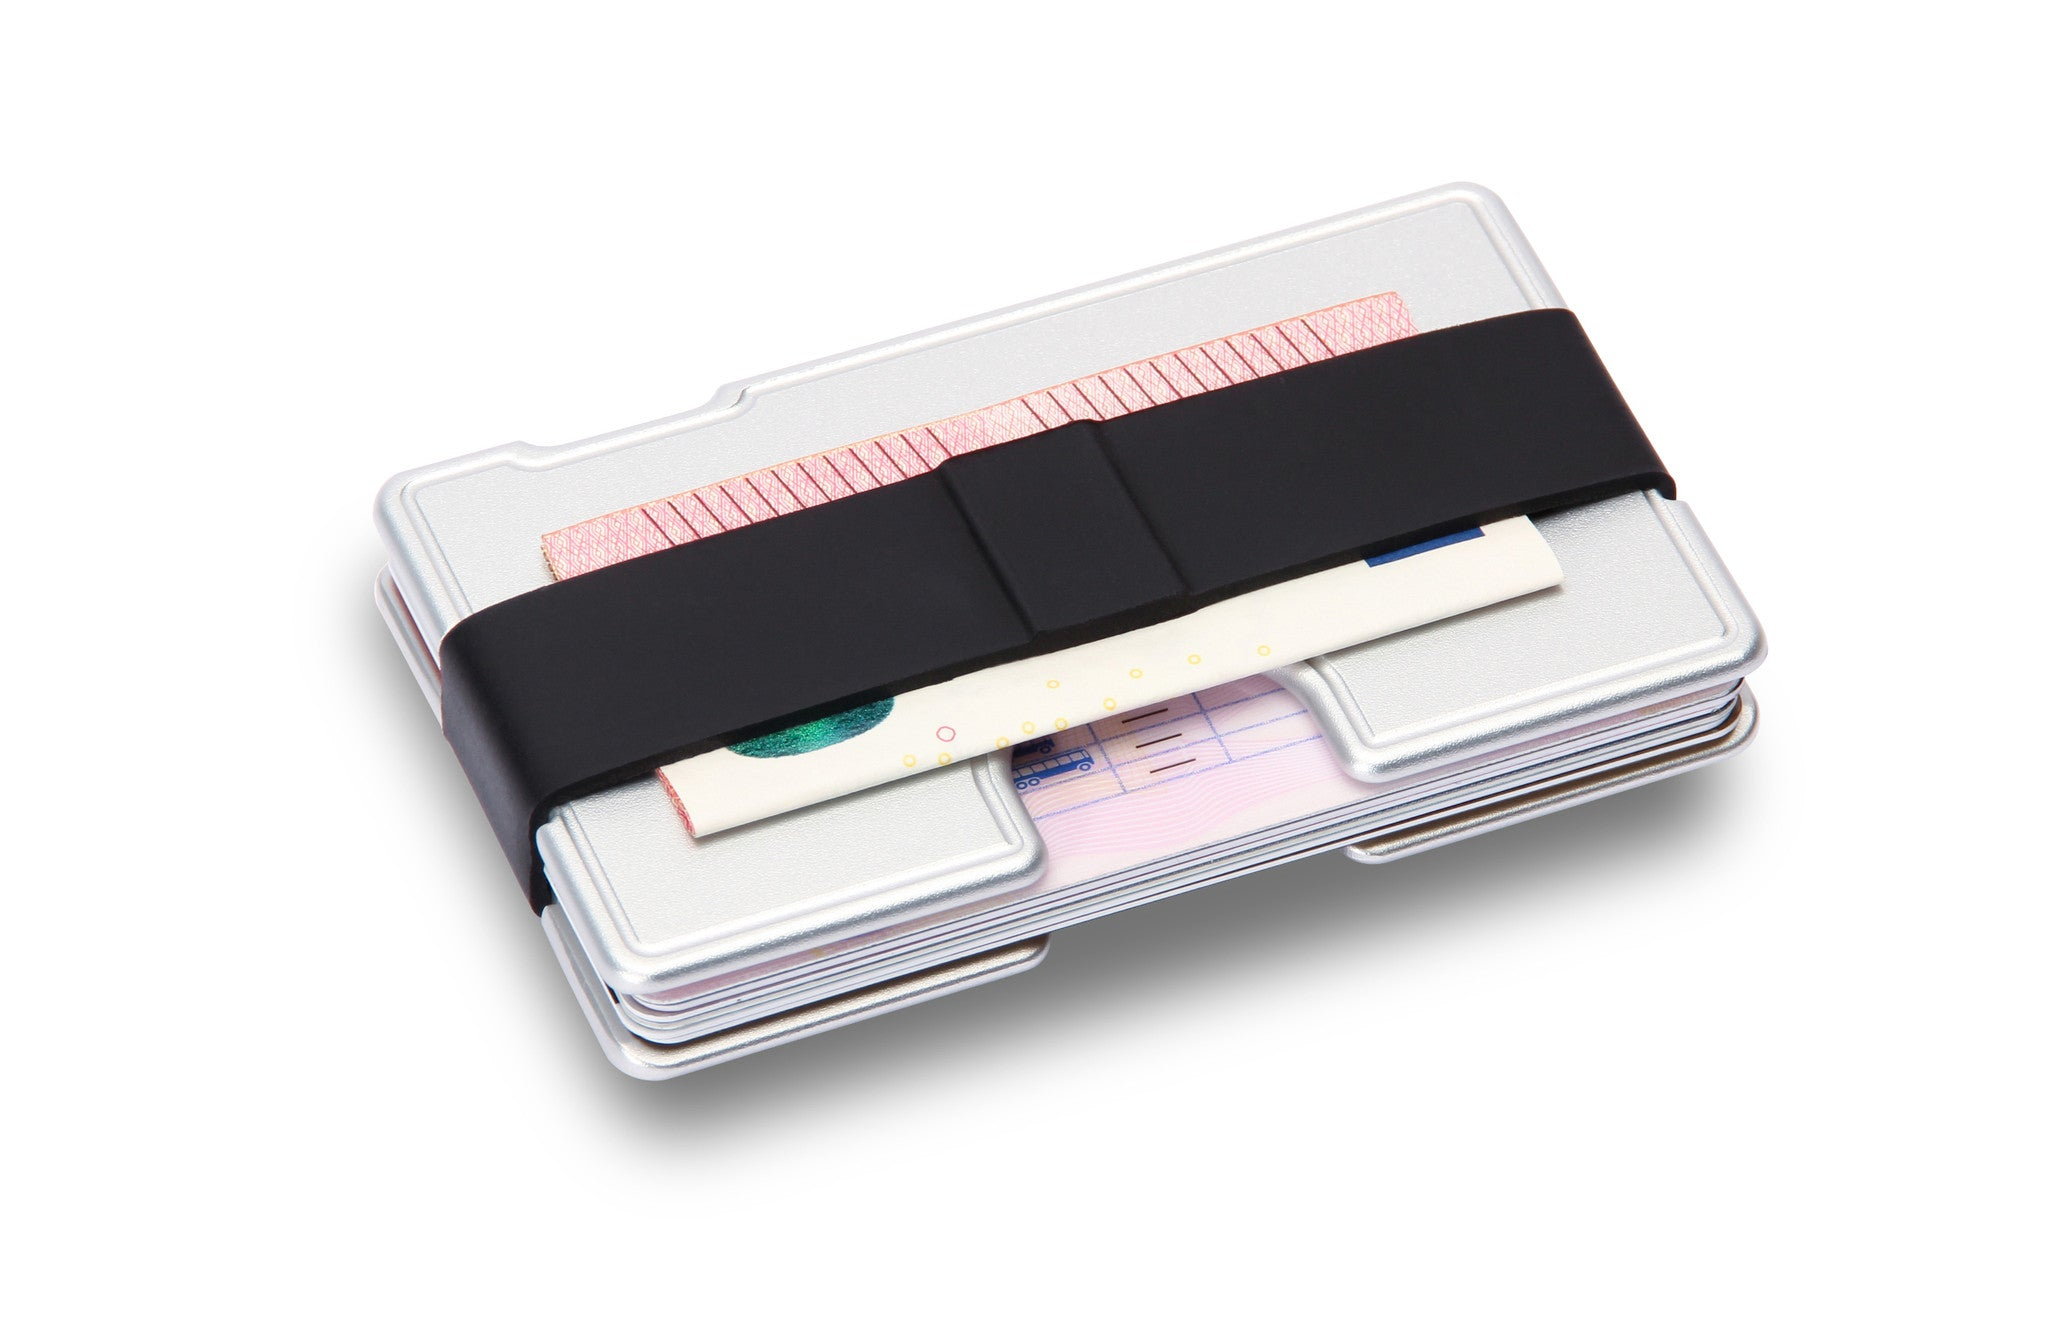 T1 Slim Wallet Wallet RFID-Blocking